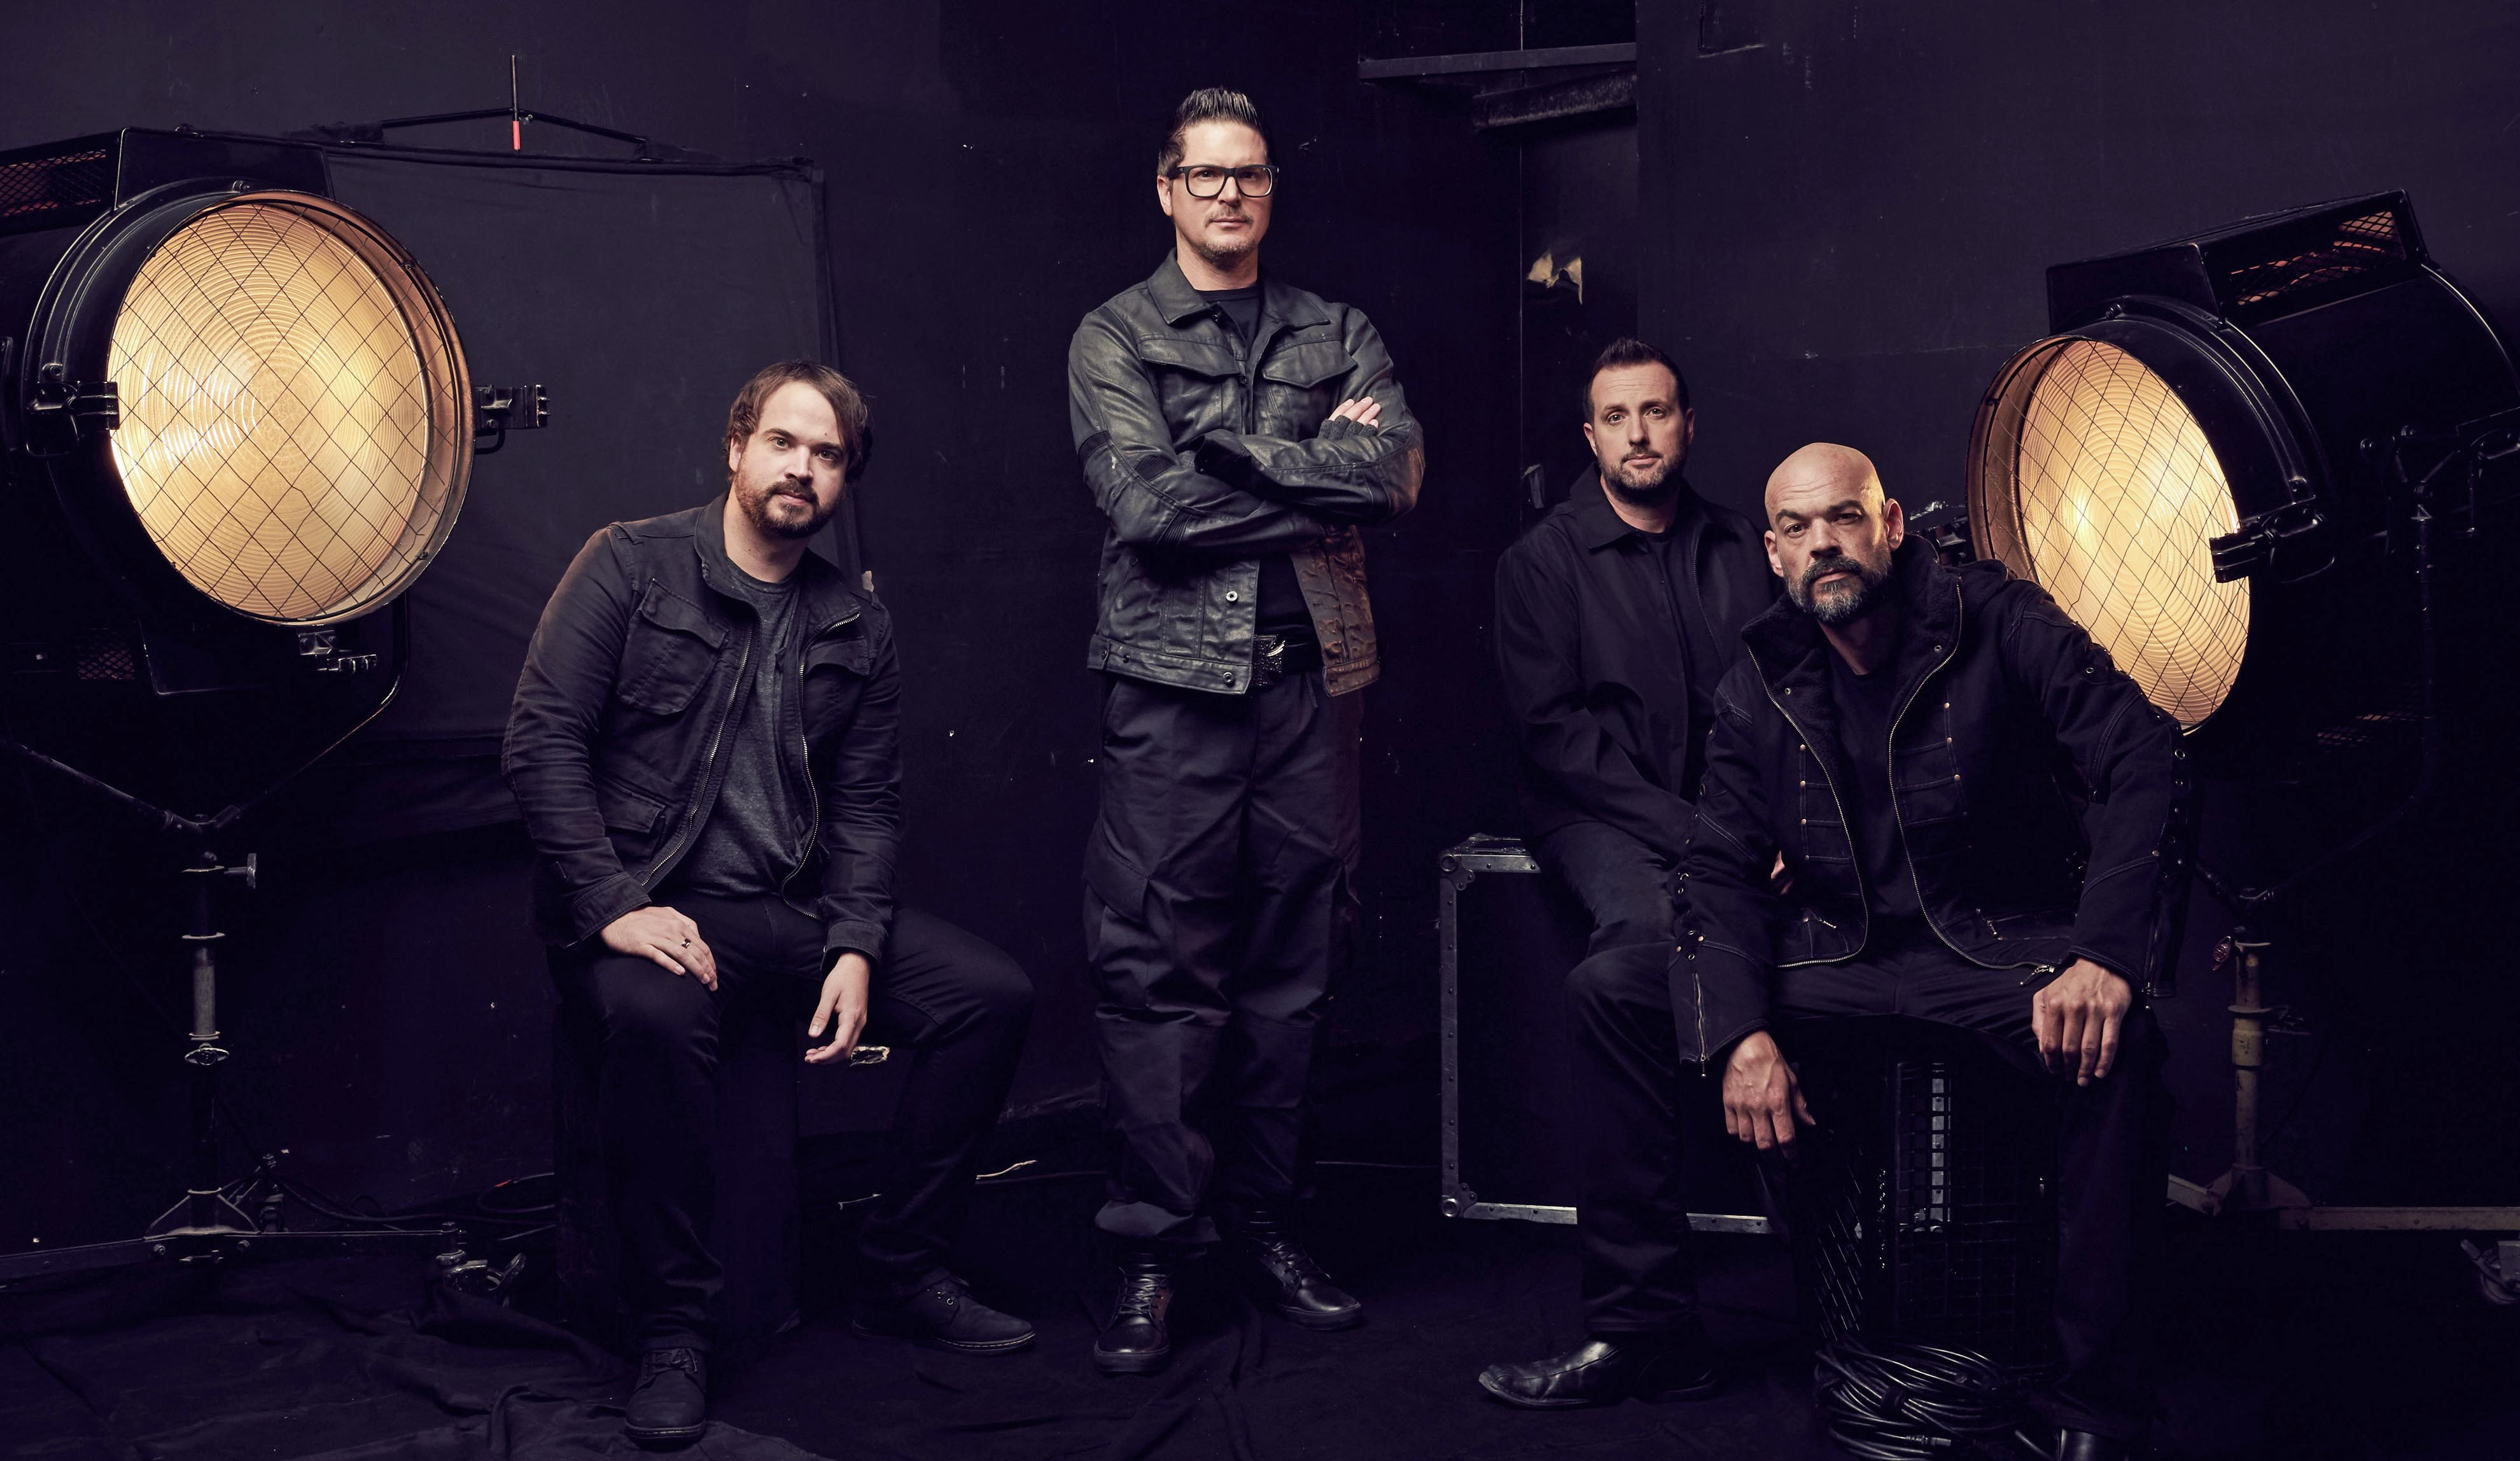 Ghost Adventures Halloween Special 2020 The 'Ghost Adventures' Crew Talk About Where They'd Love to Do a